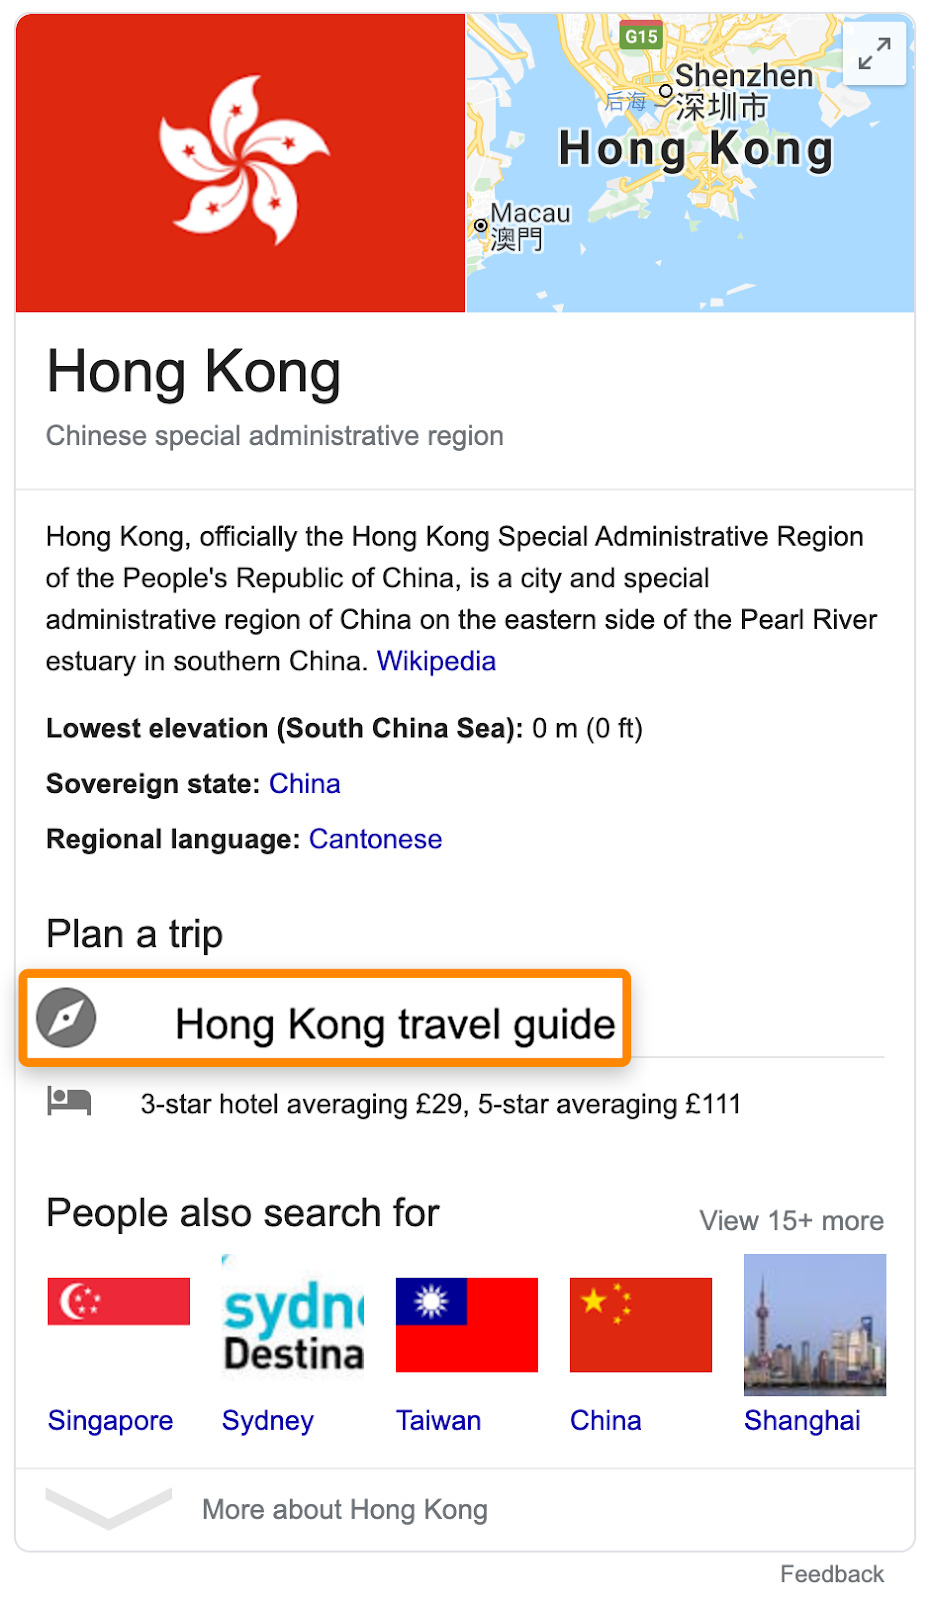 17 hong kong travel guide